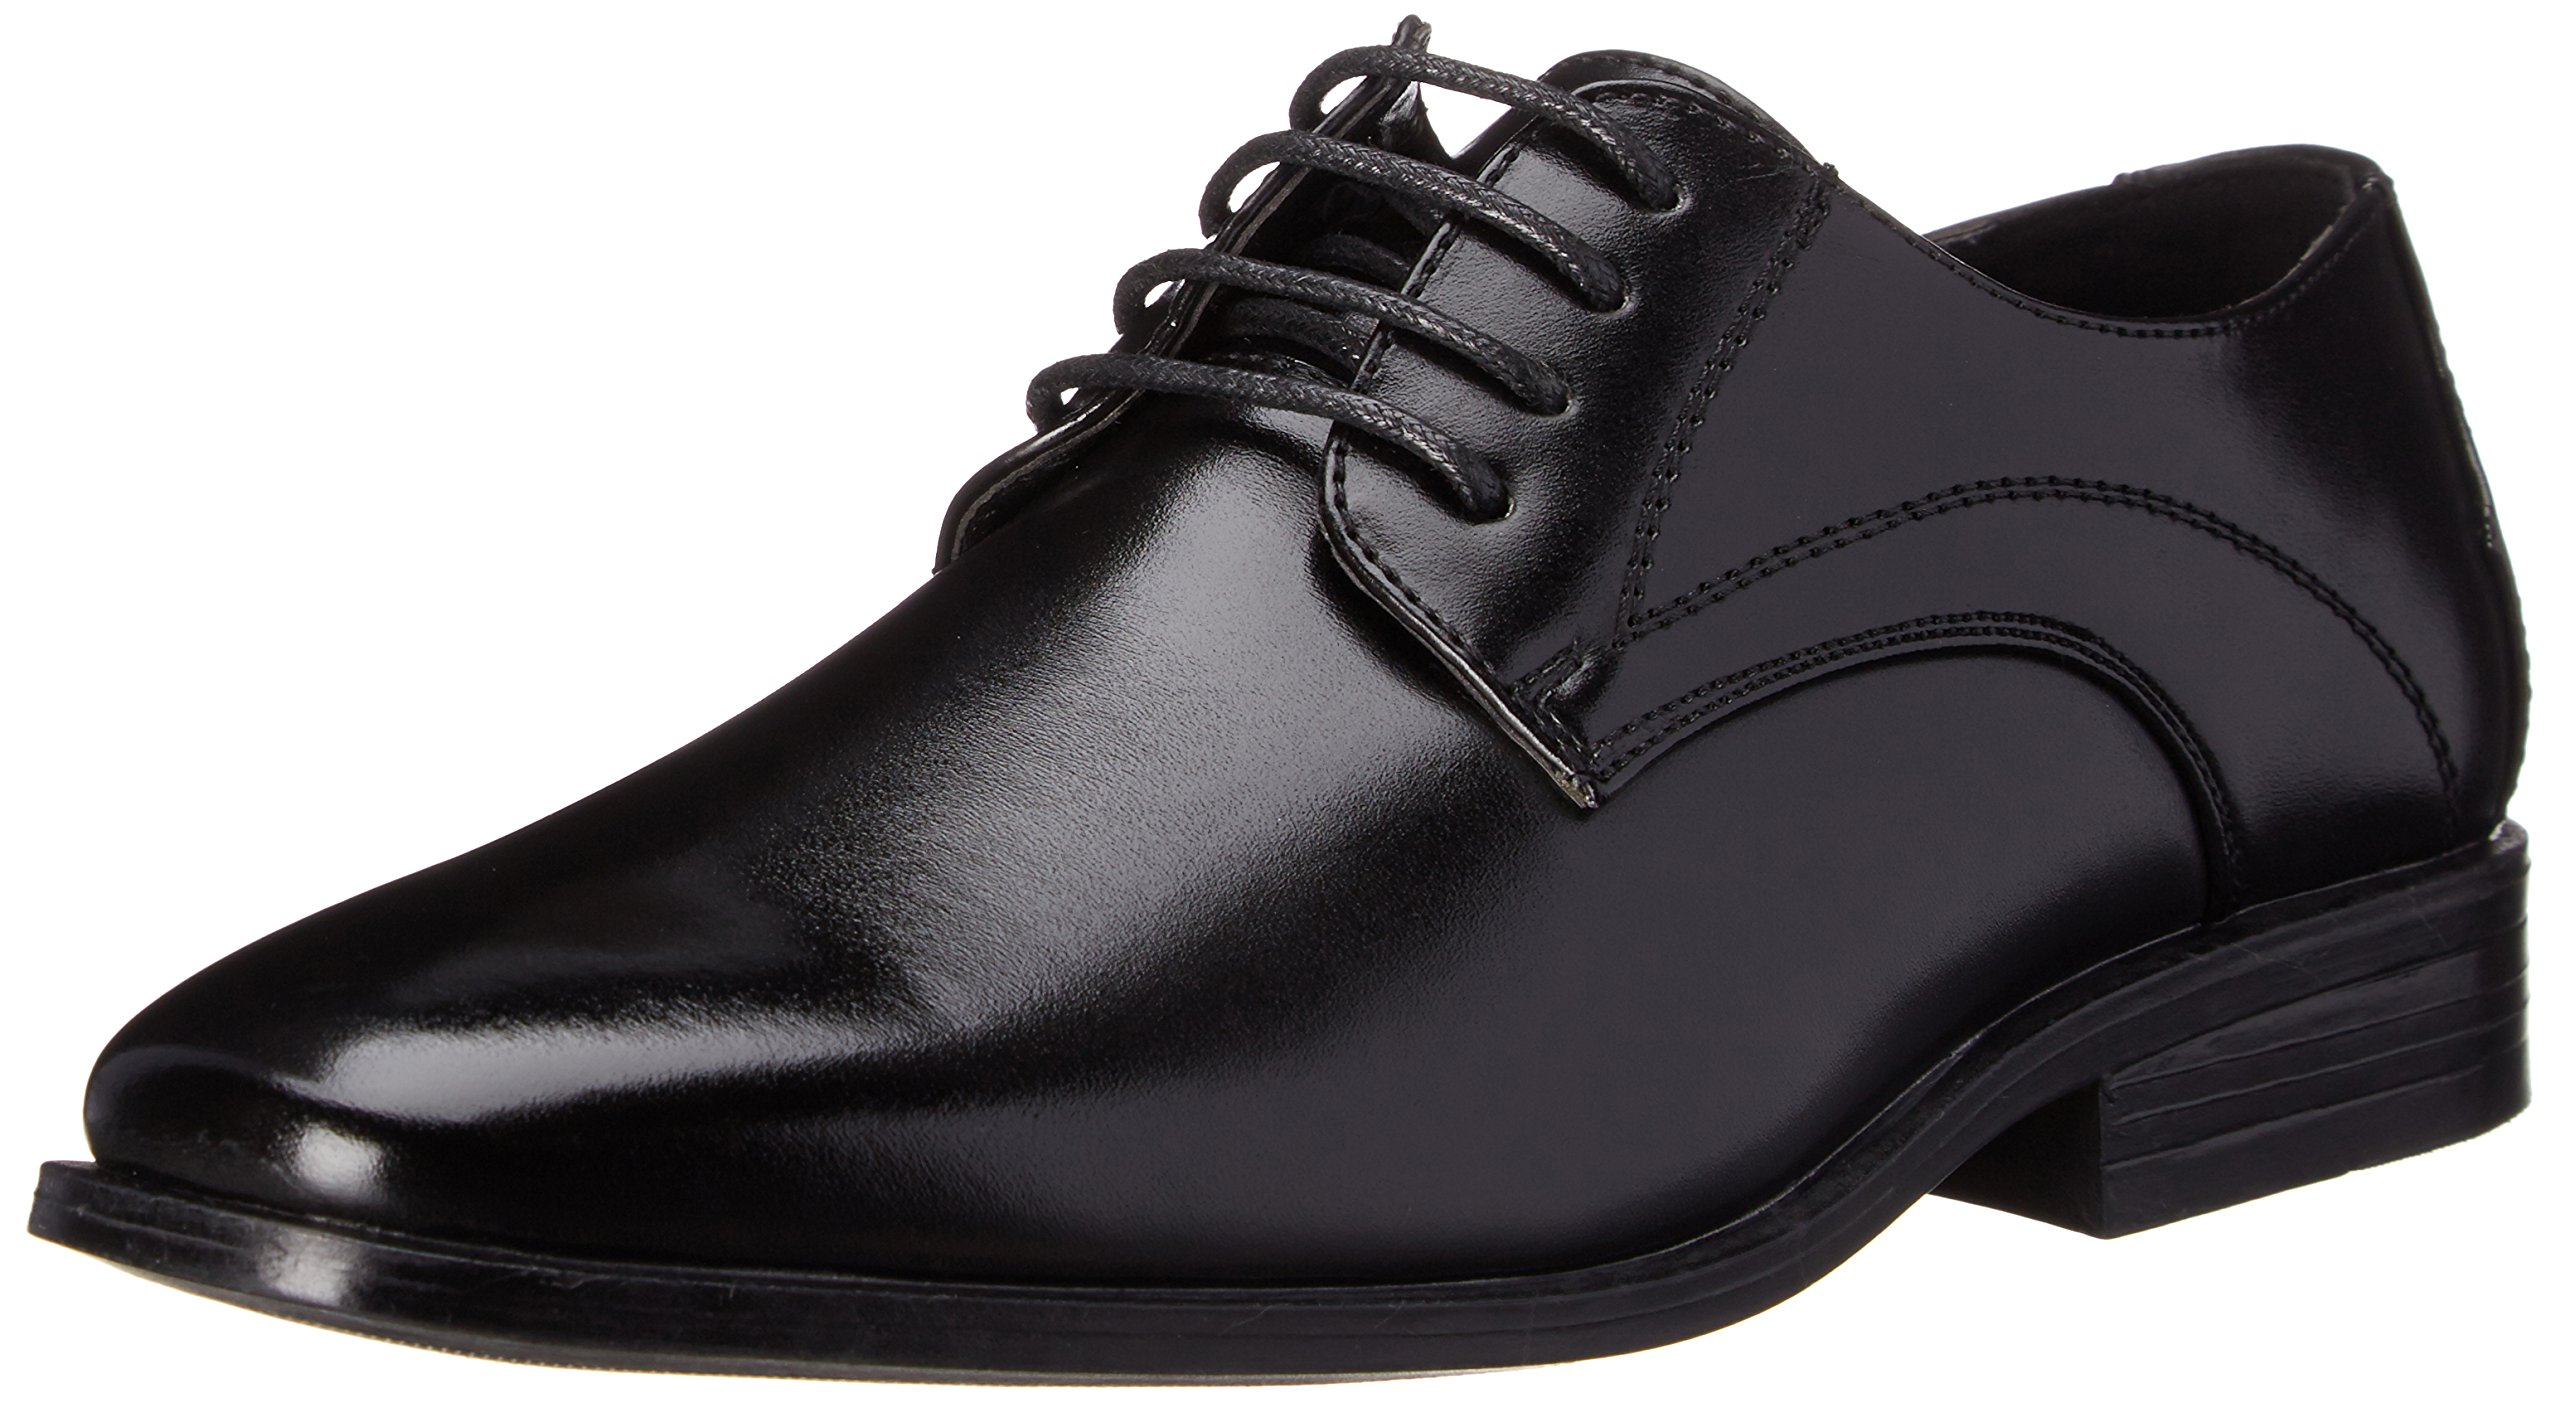 Stacy Adams Carmichael Plain Toe Lace-up Uniform Oxford Dress Shoe (Little Kid/Big Kid),Black,4.5 M US Big Kid